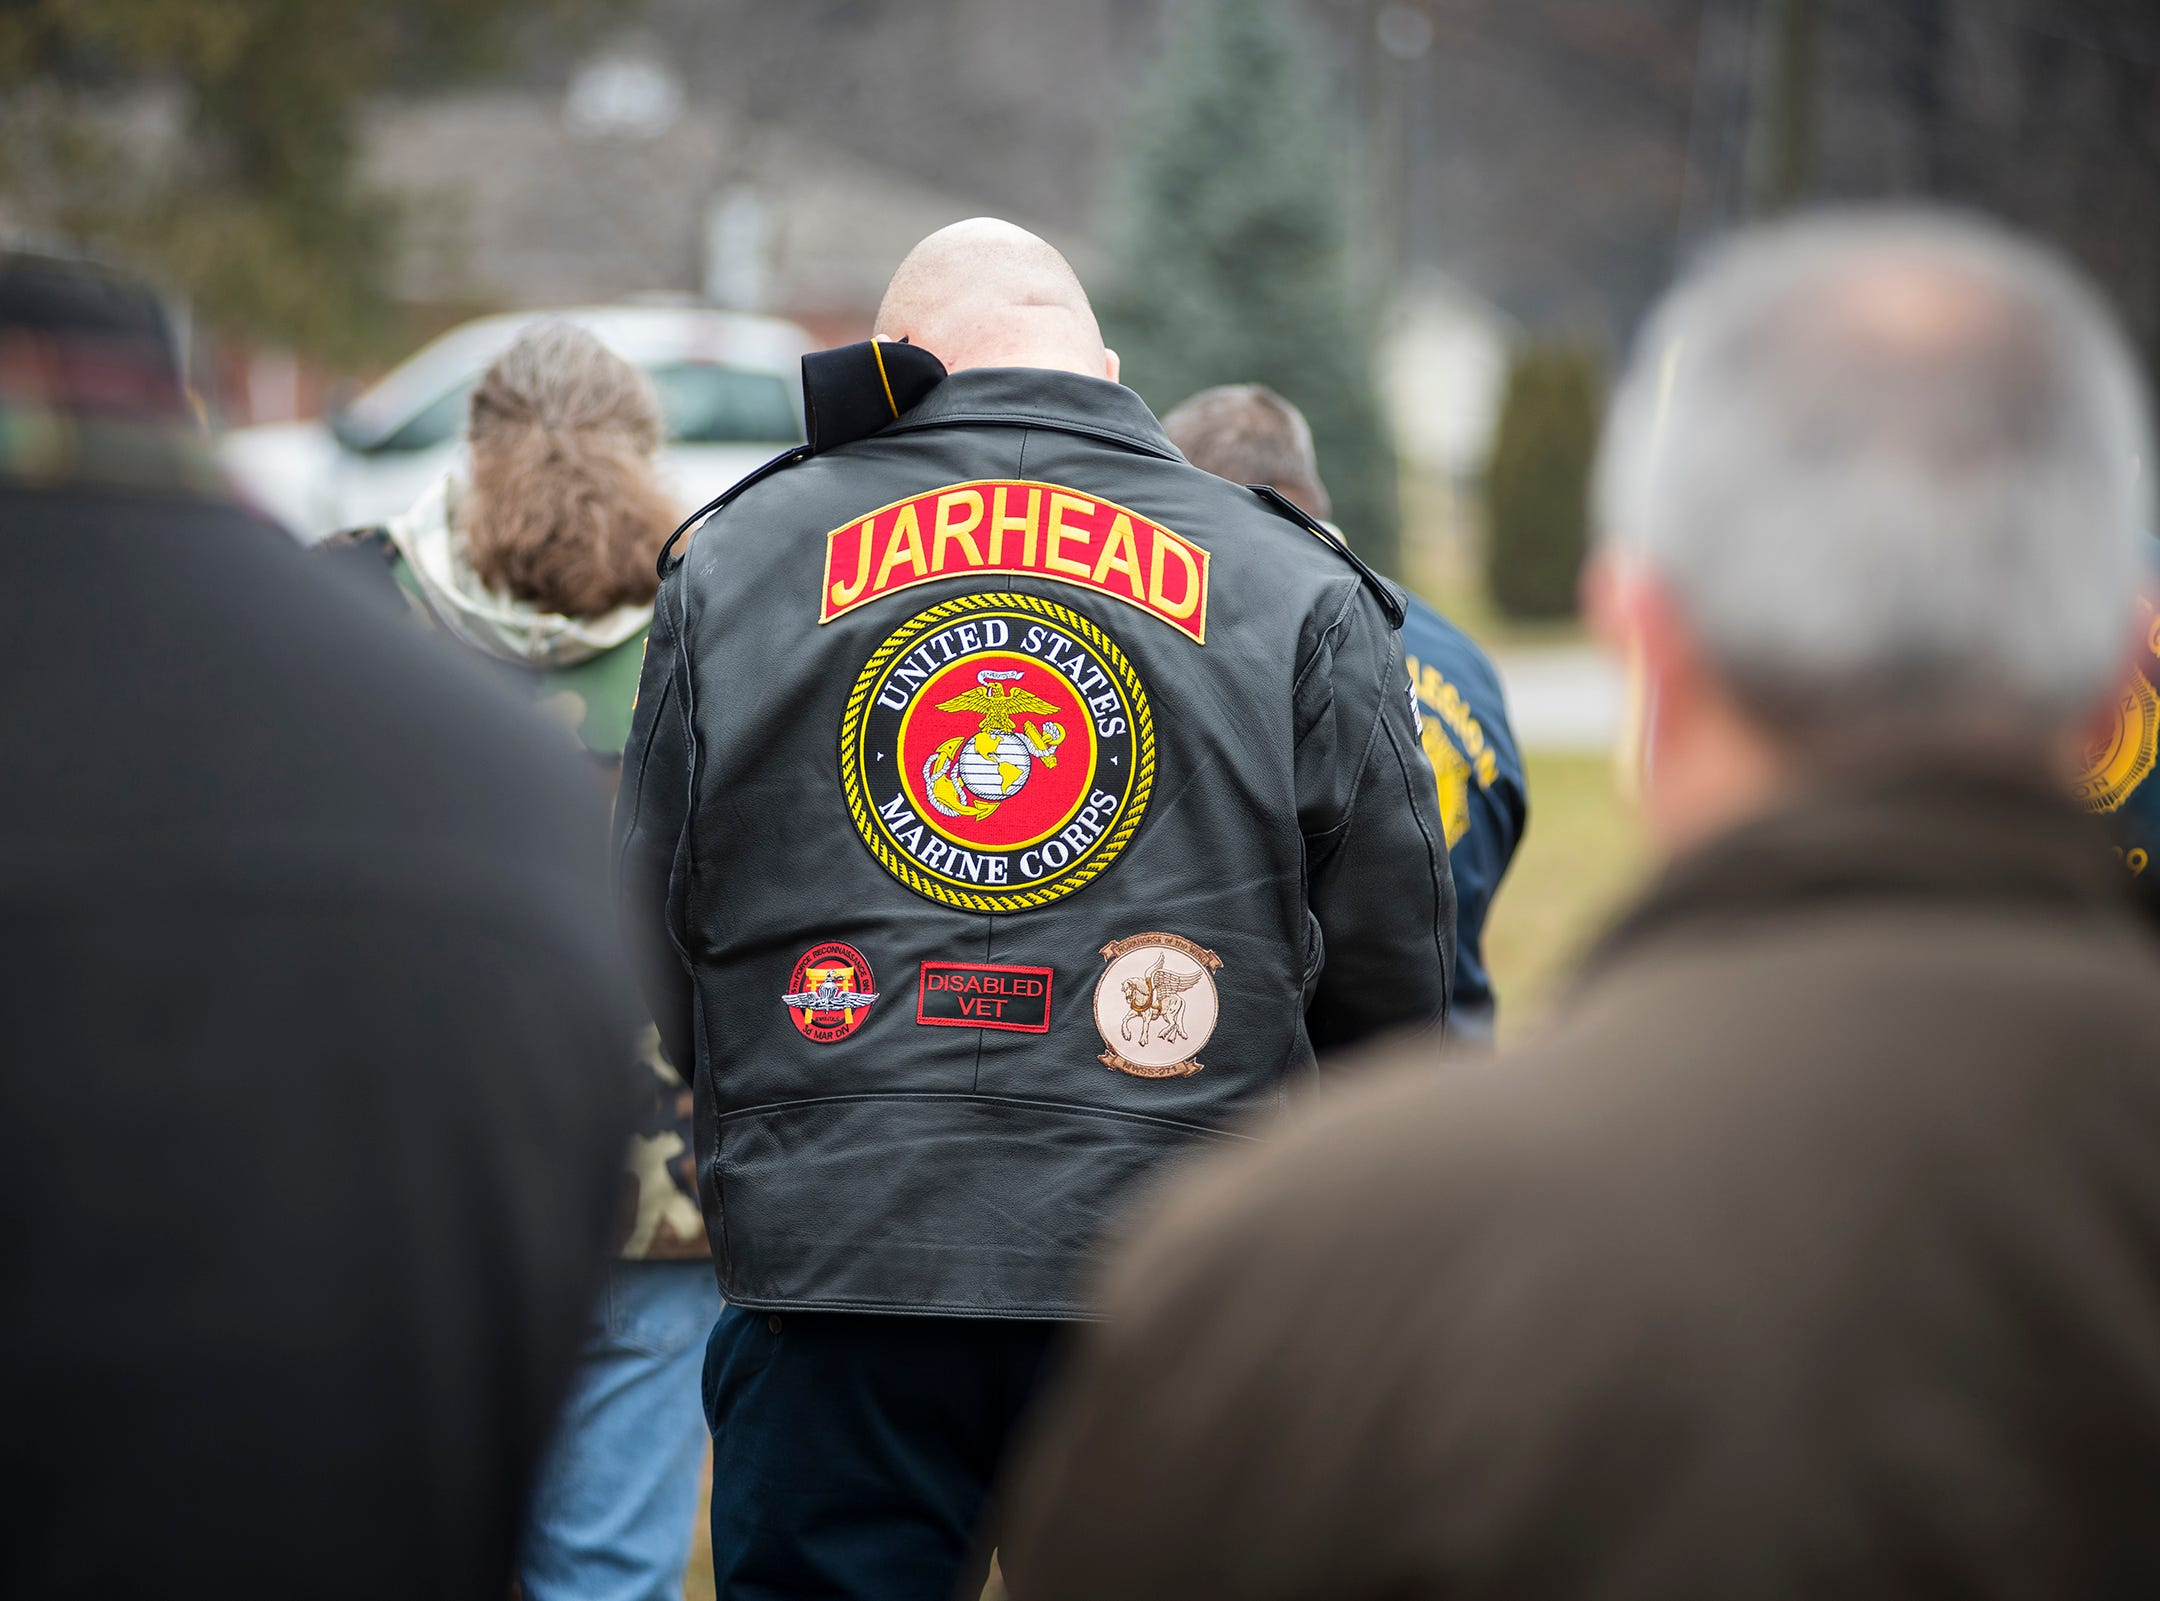 Veterans from different branches of the military attend the funeral for Joseph A. Humphries Friday, Dec. 14, 2018 at Allied Veterans Cemetery in Fort Gratiot. Humphries, a U.S. Army veteran, was born and lived in Port Huron but has no known relatives in the area.